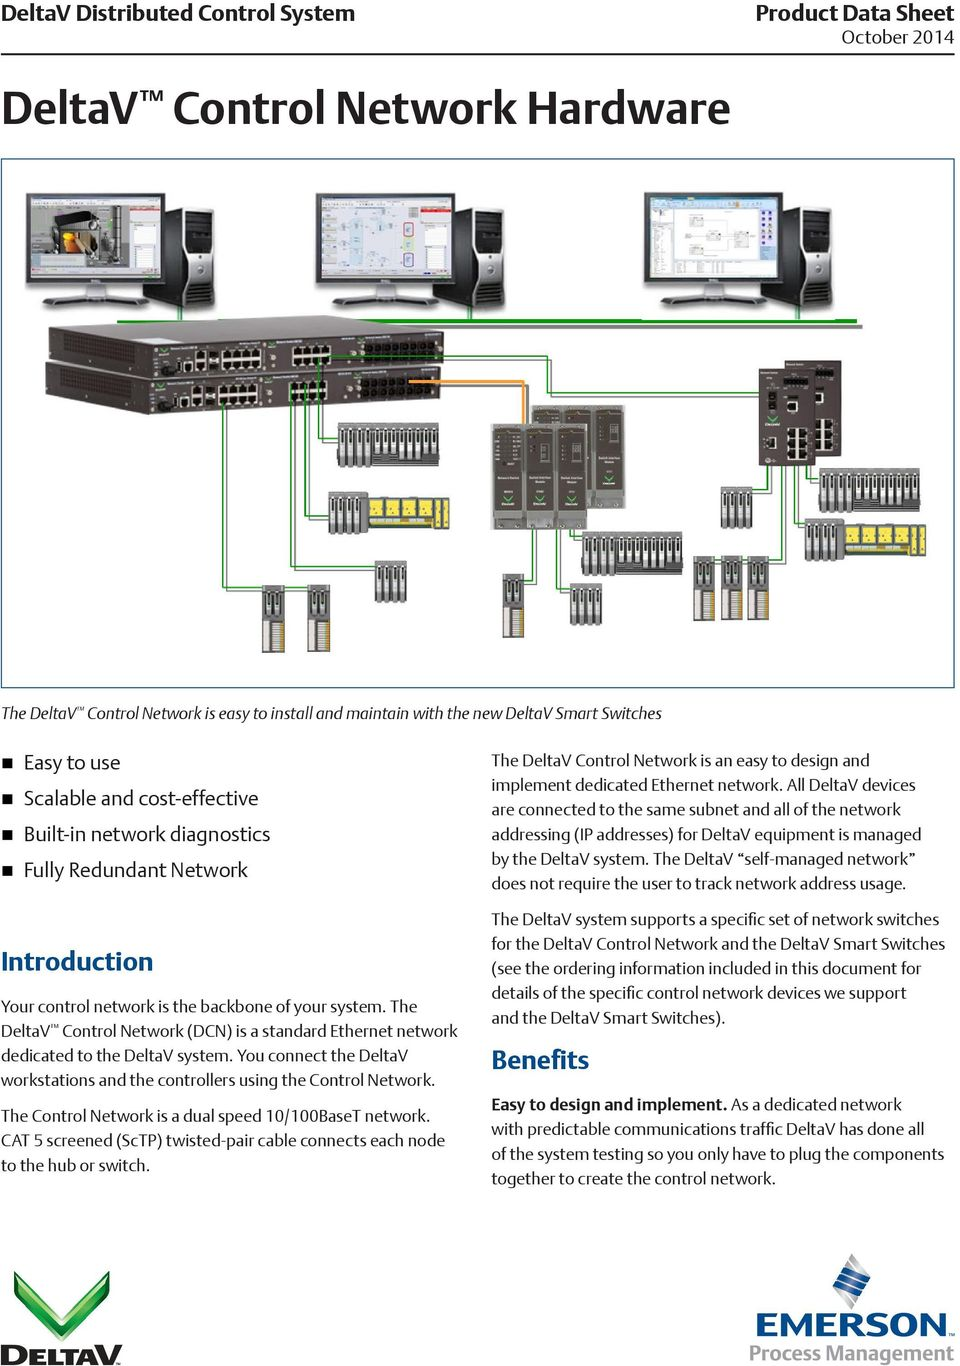 The DeltaV Control Network (DCN) is a standard Ethernet network dedicated to the DeltaV system. You connect the DeltaV workstations and the controllers using the Control Network.